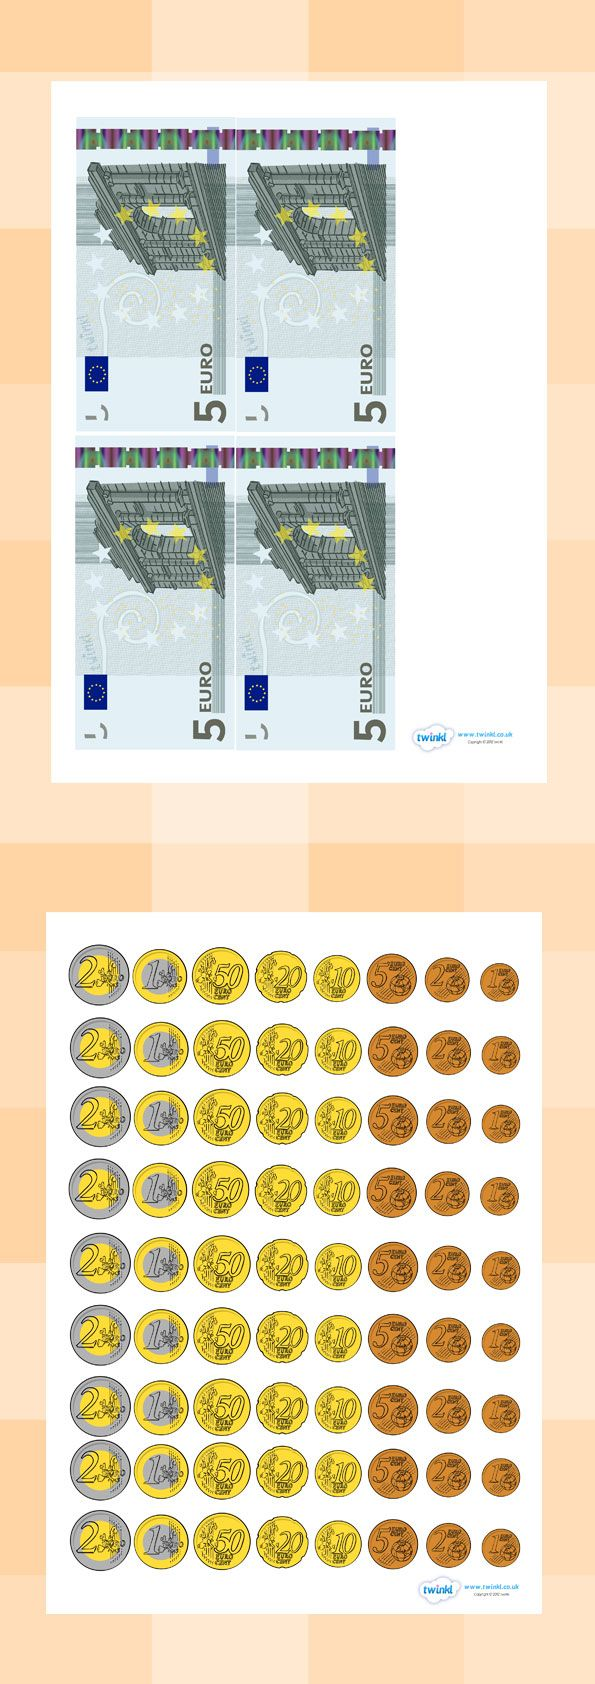 Free Euro Money Resources  Euro coins front and back  Early